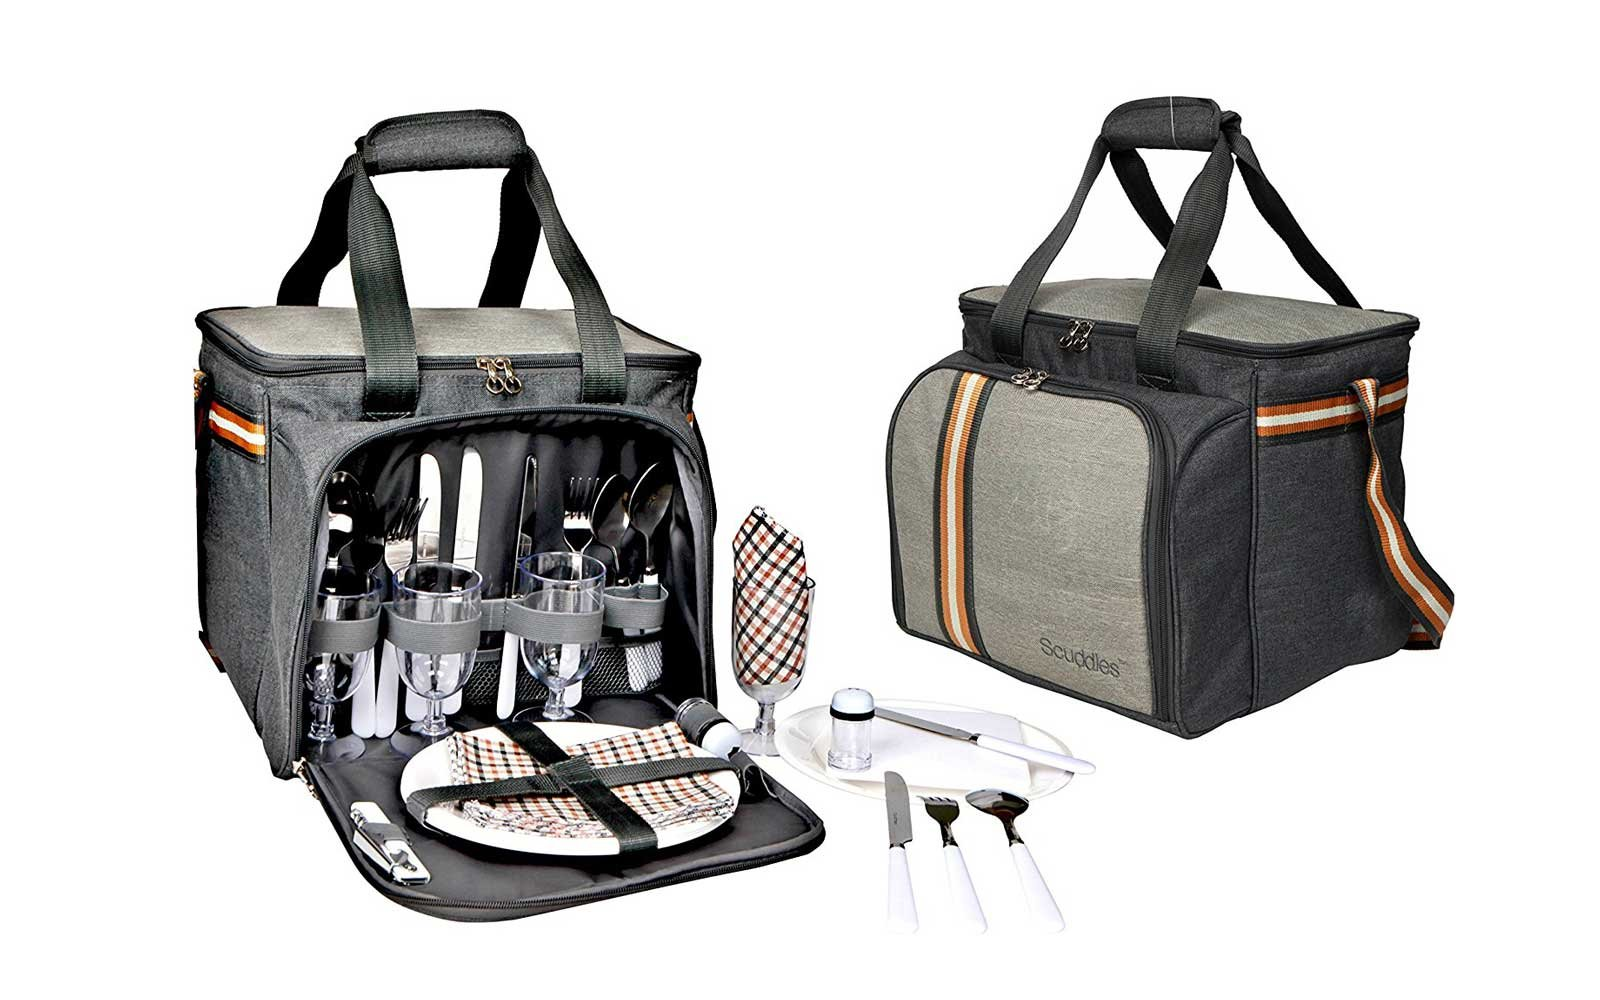 Picnic Basket Travel Backpack